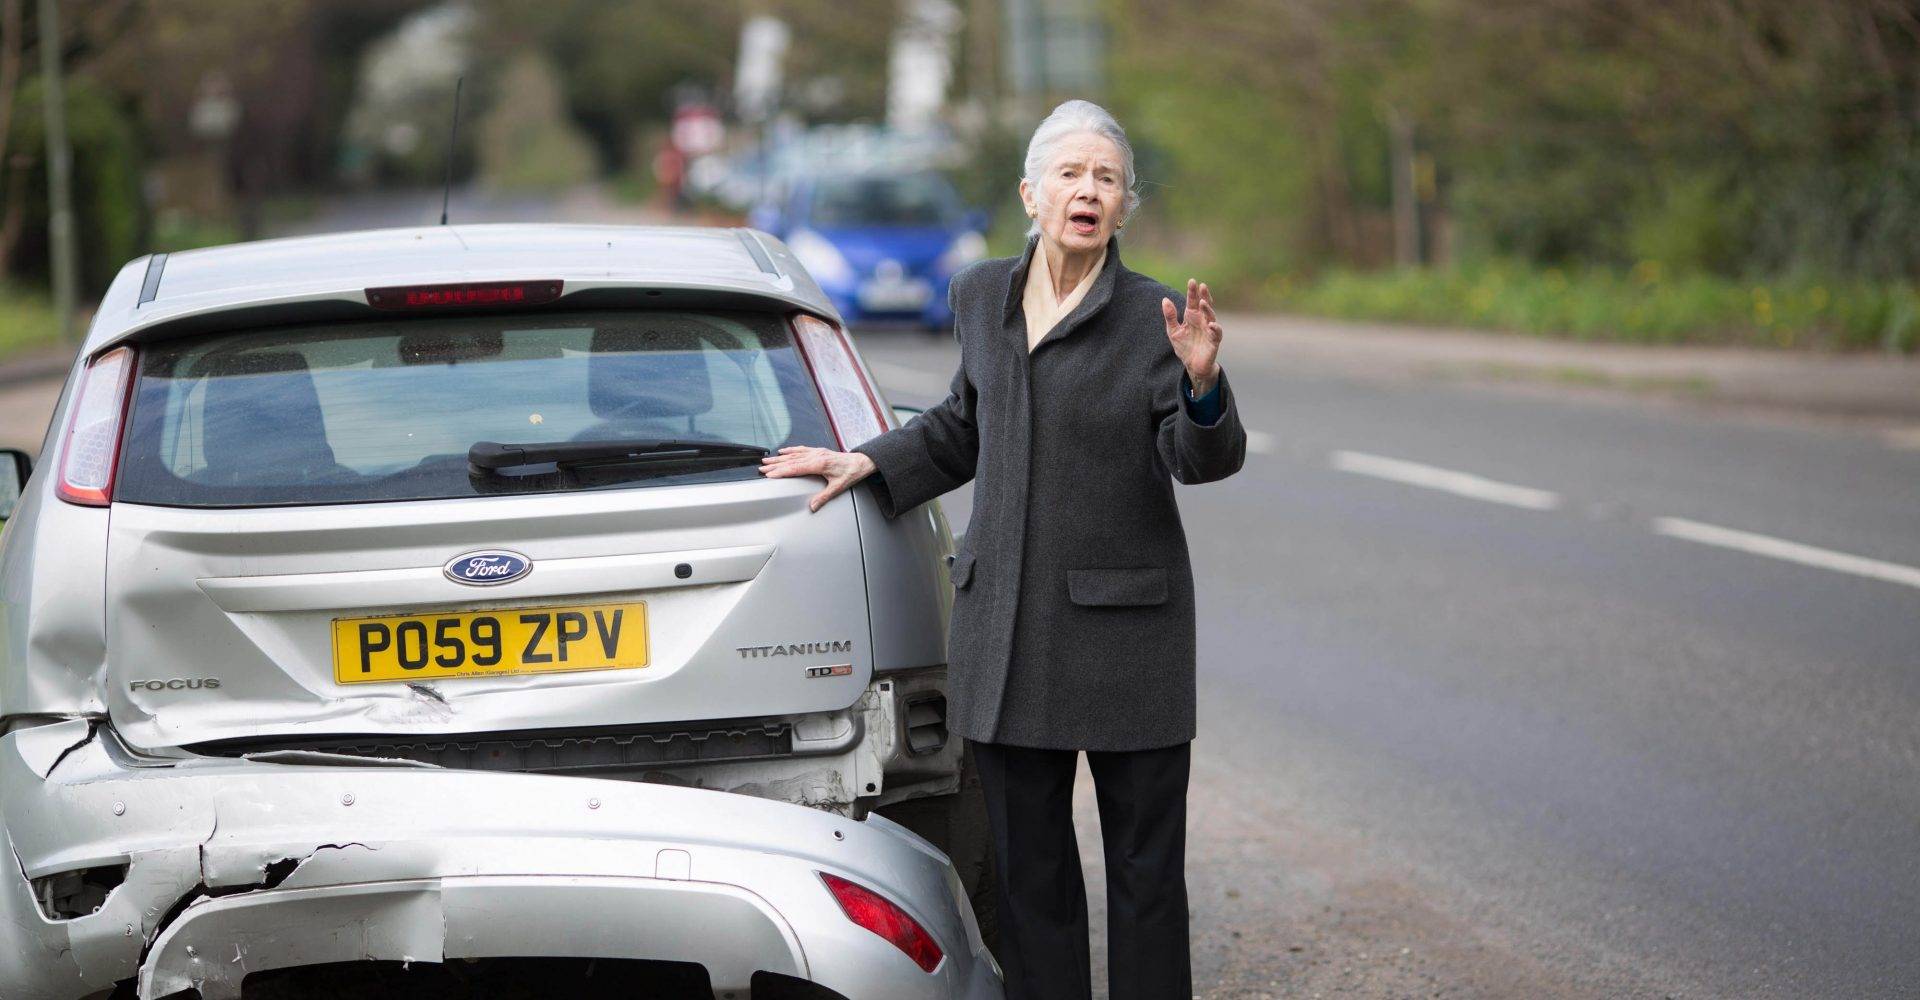 Car insurance loyalty costing drivers £674 million a year